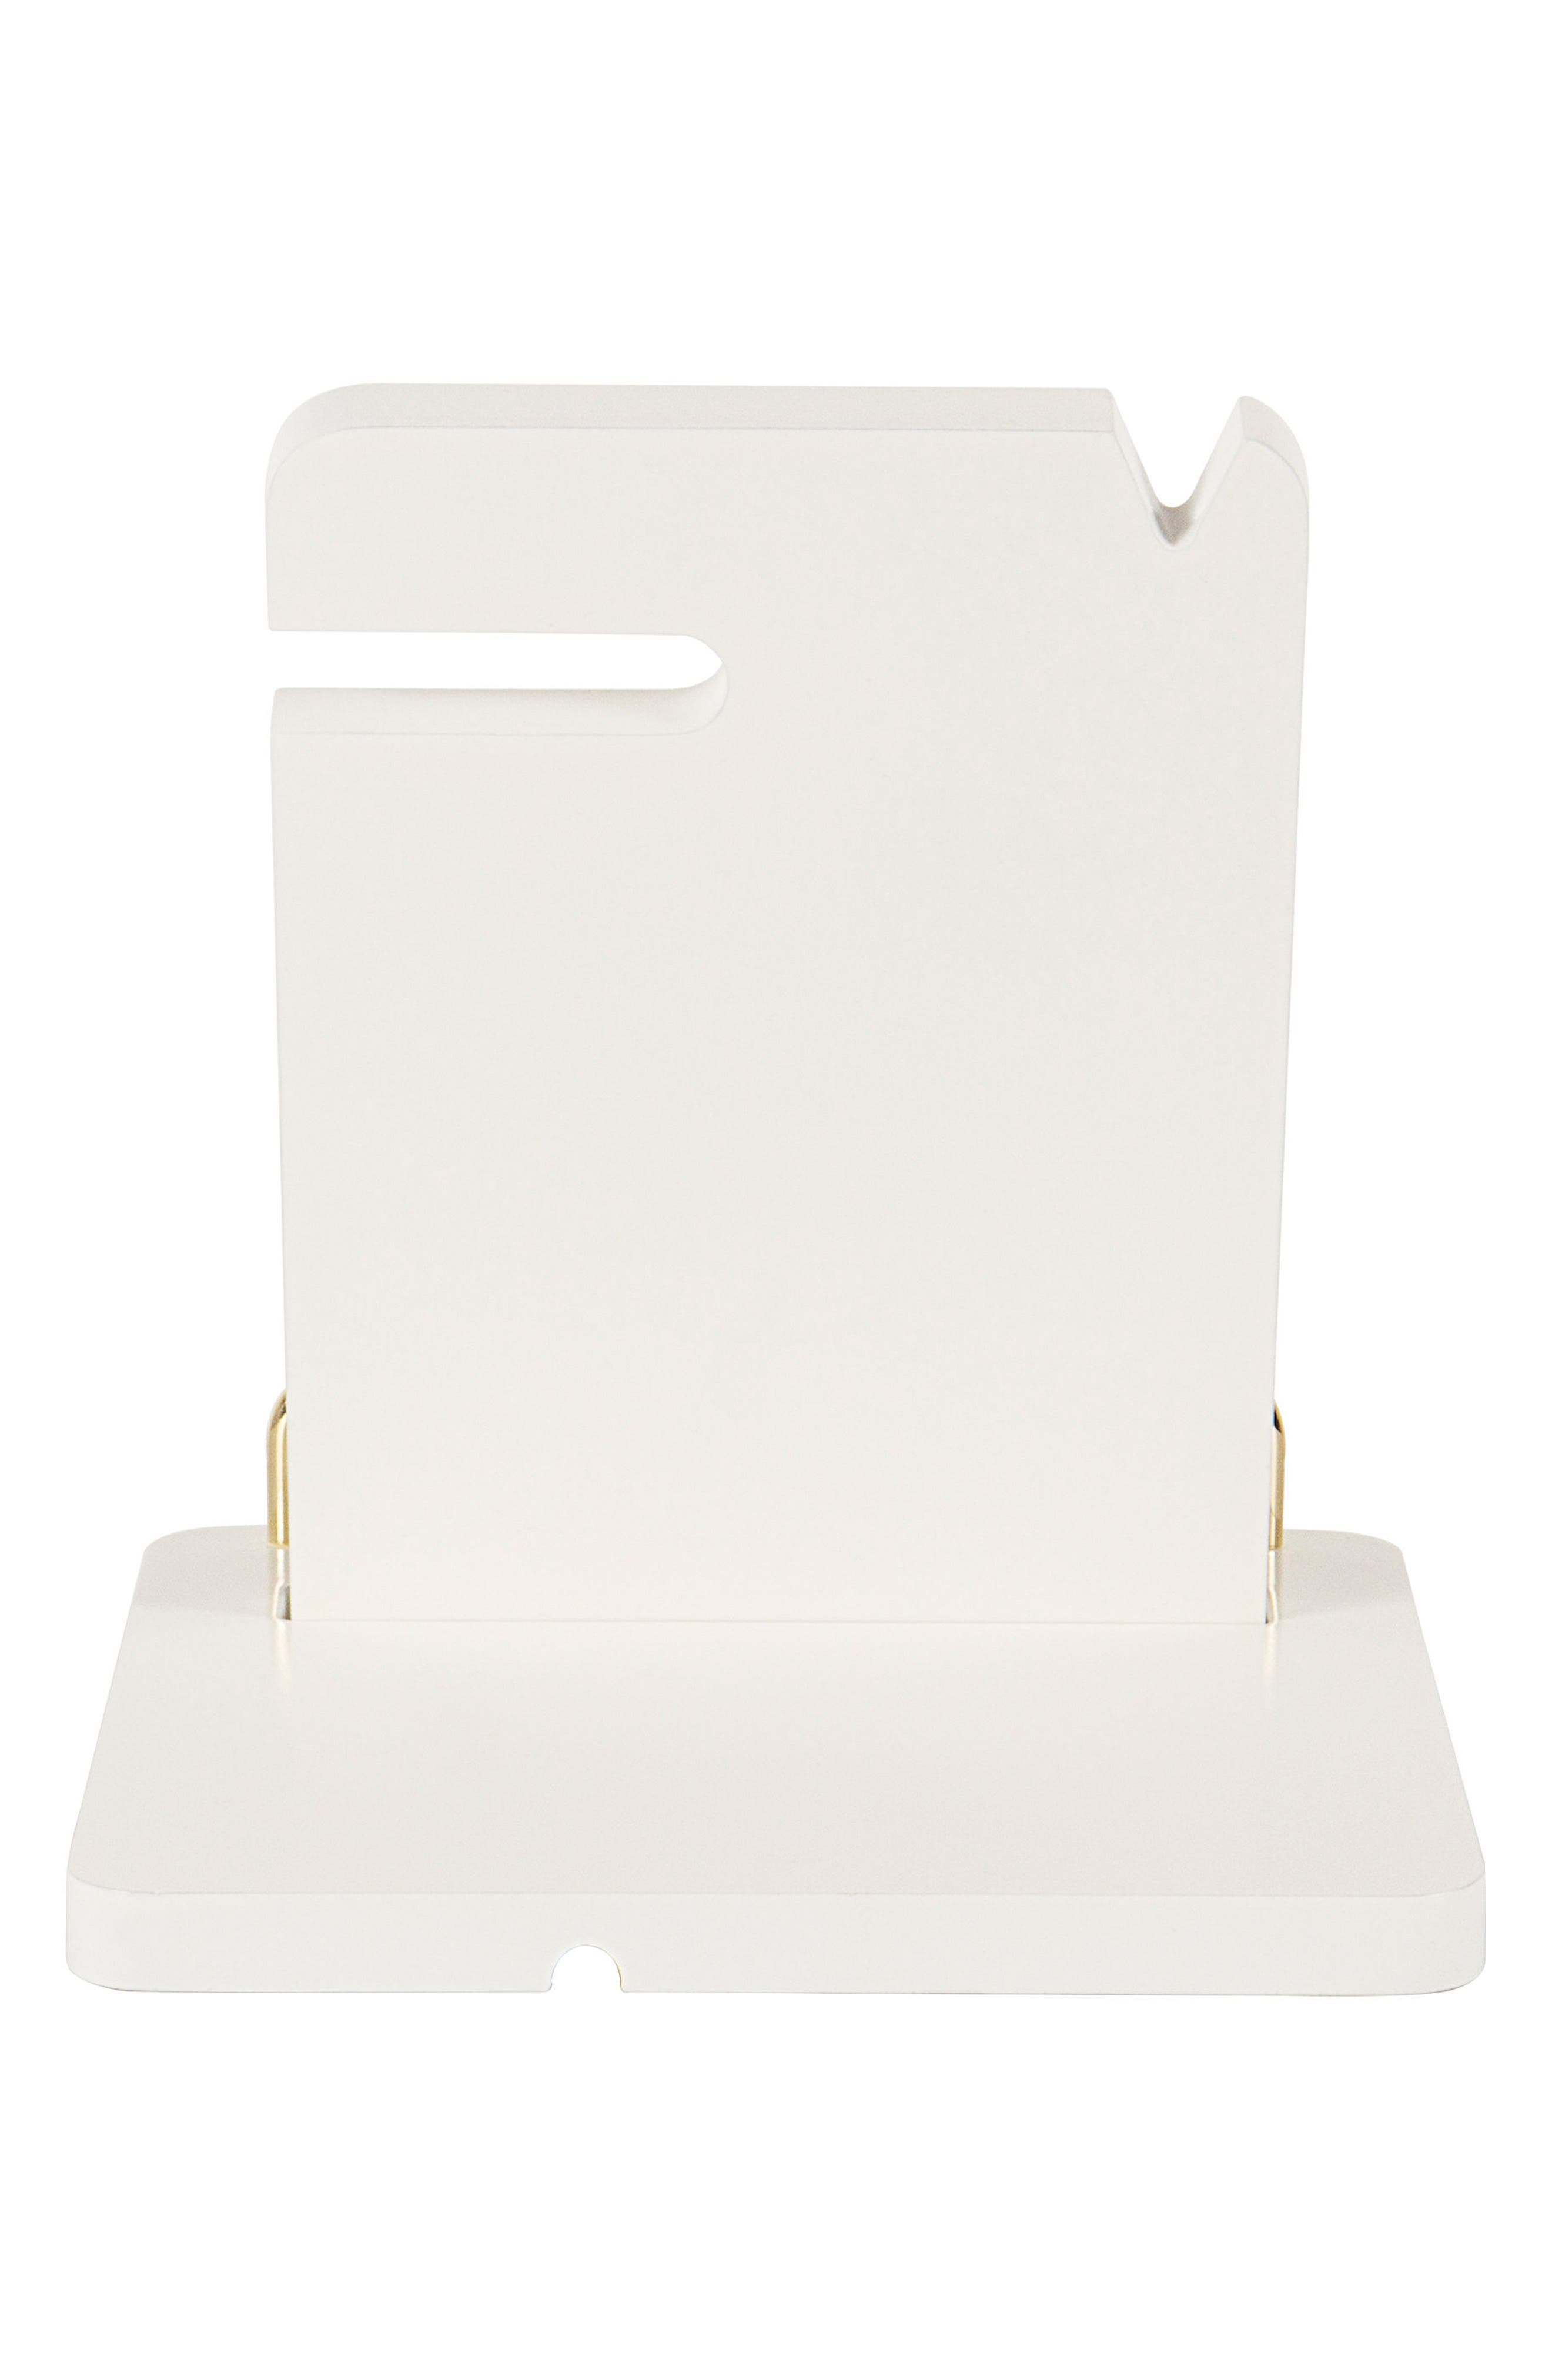 Boss Lady Lacquer Docking Station,                             Alternate thumbnail 7, color,                             White